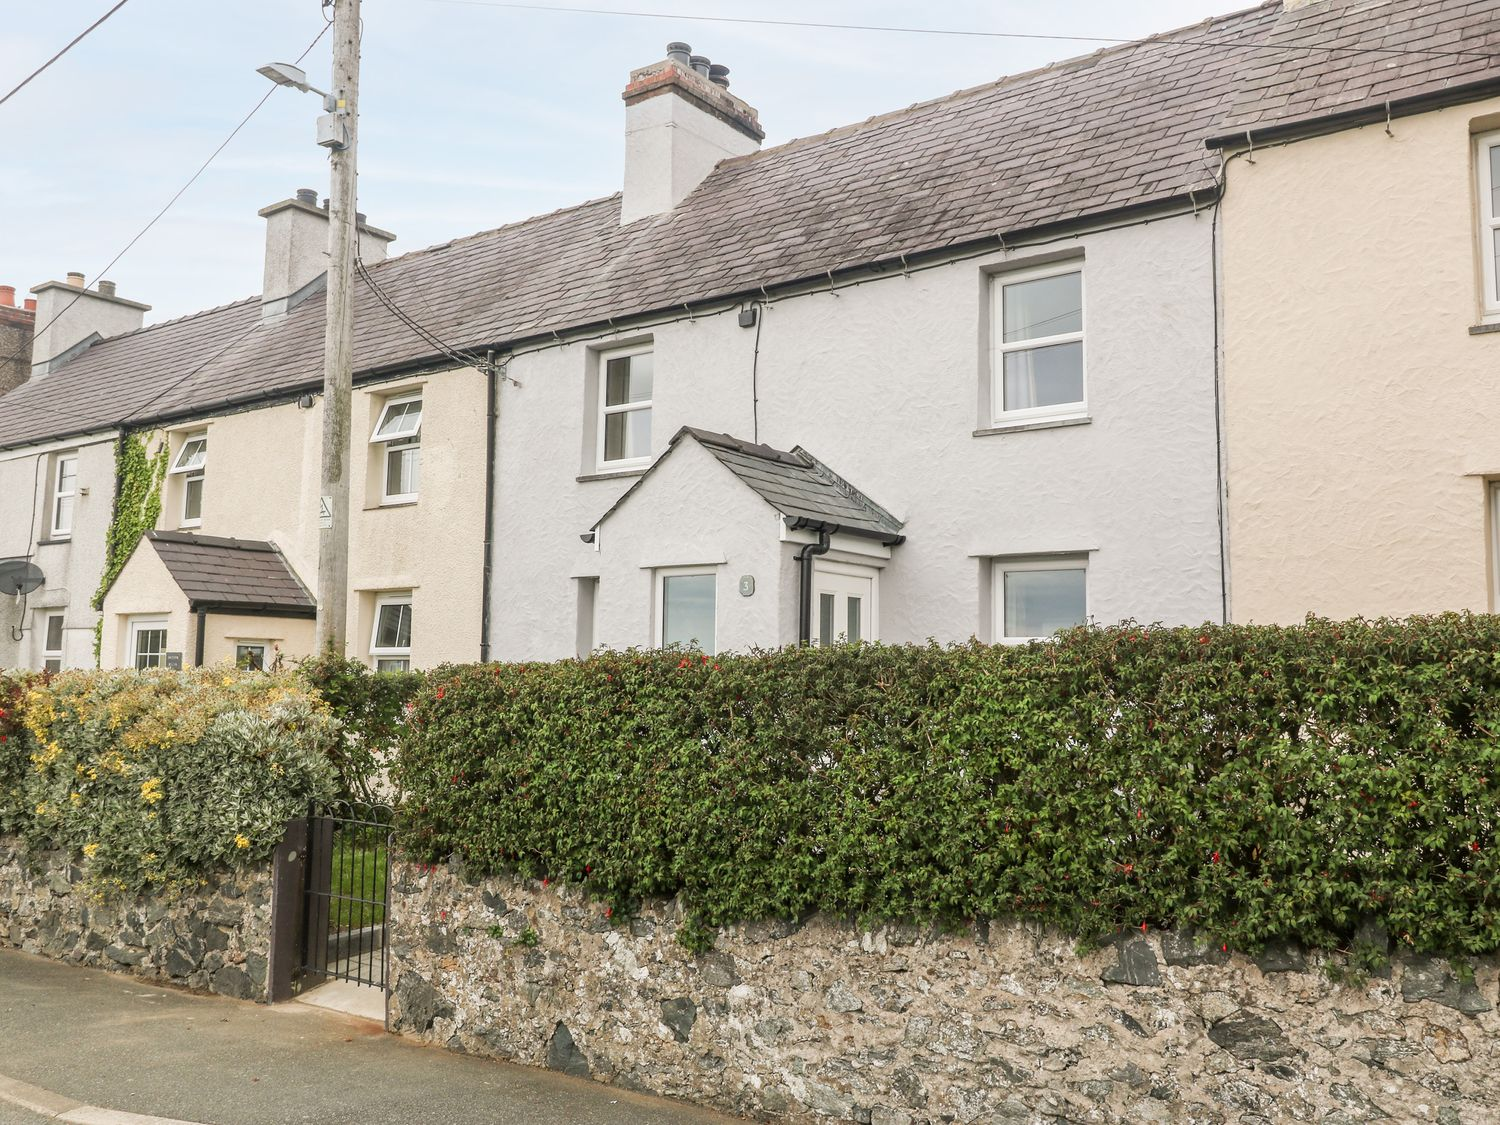 3 Green Terrace - Anglesey - 990192 - photo 1